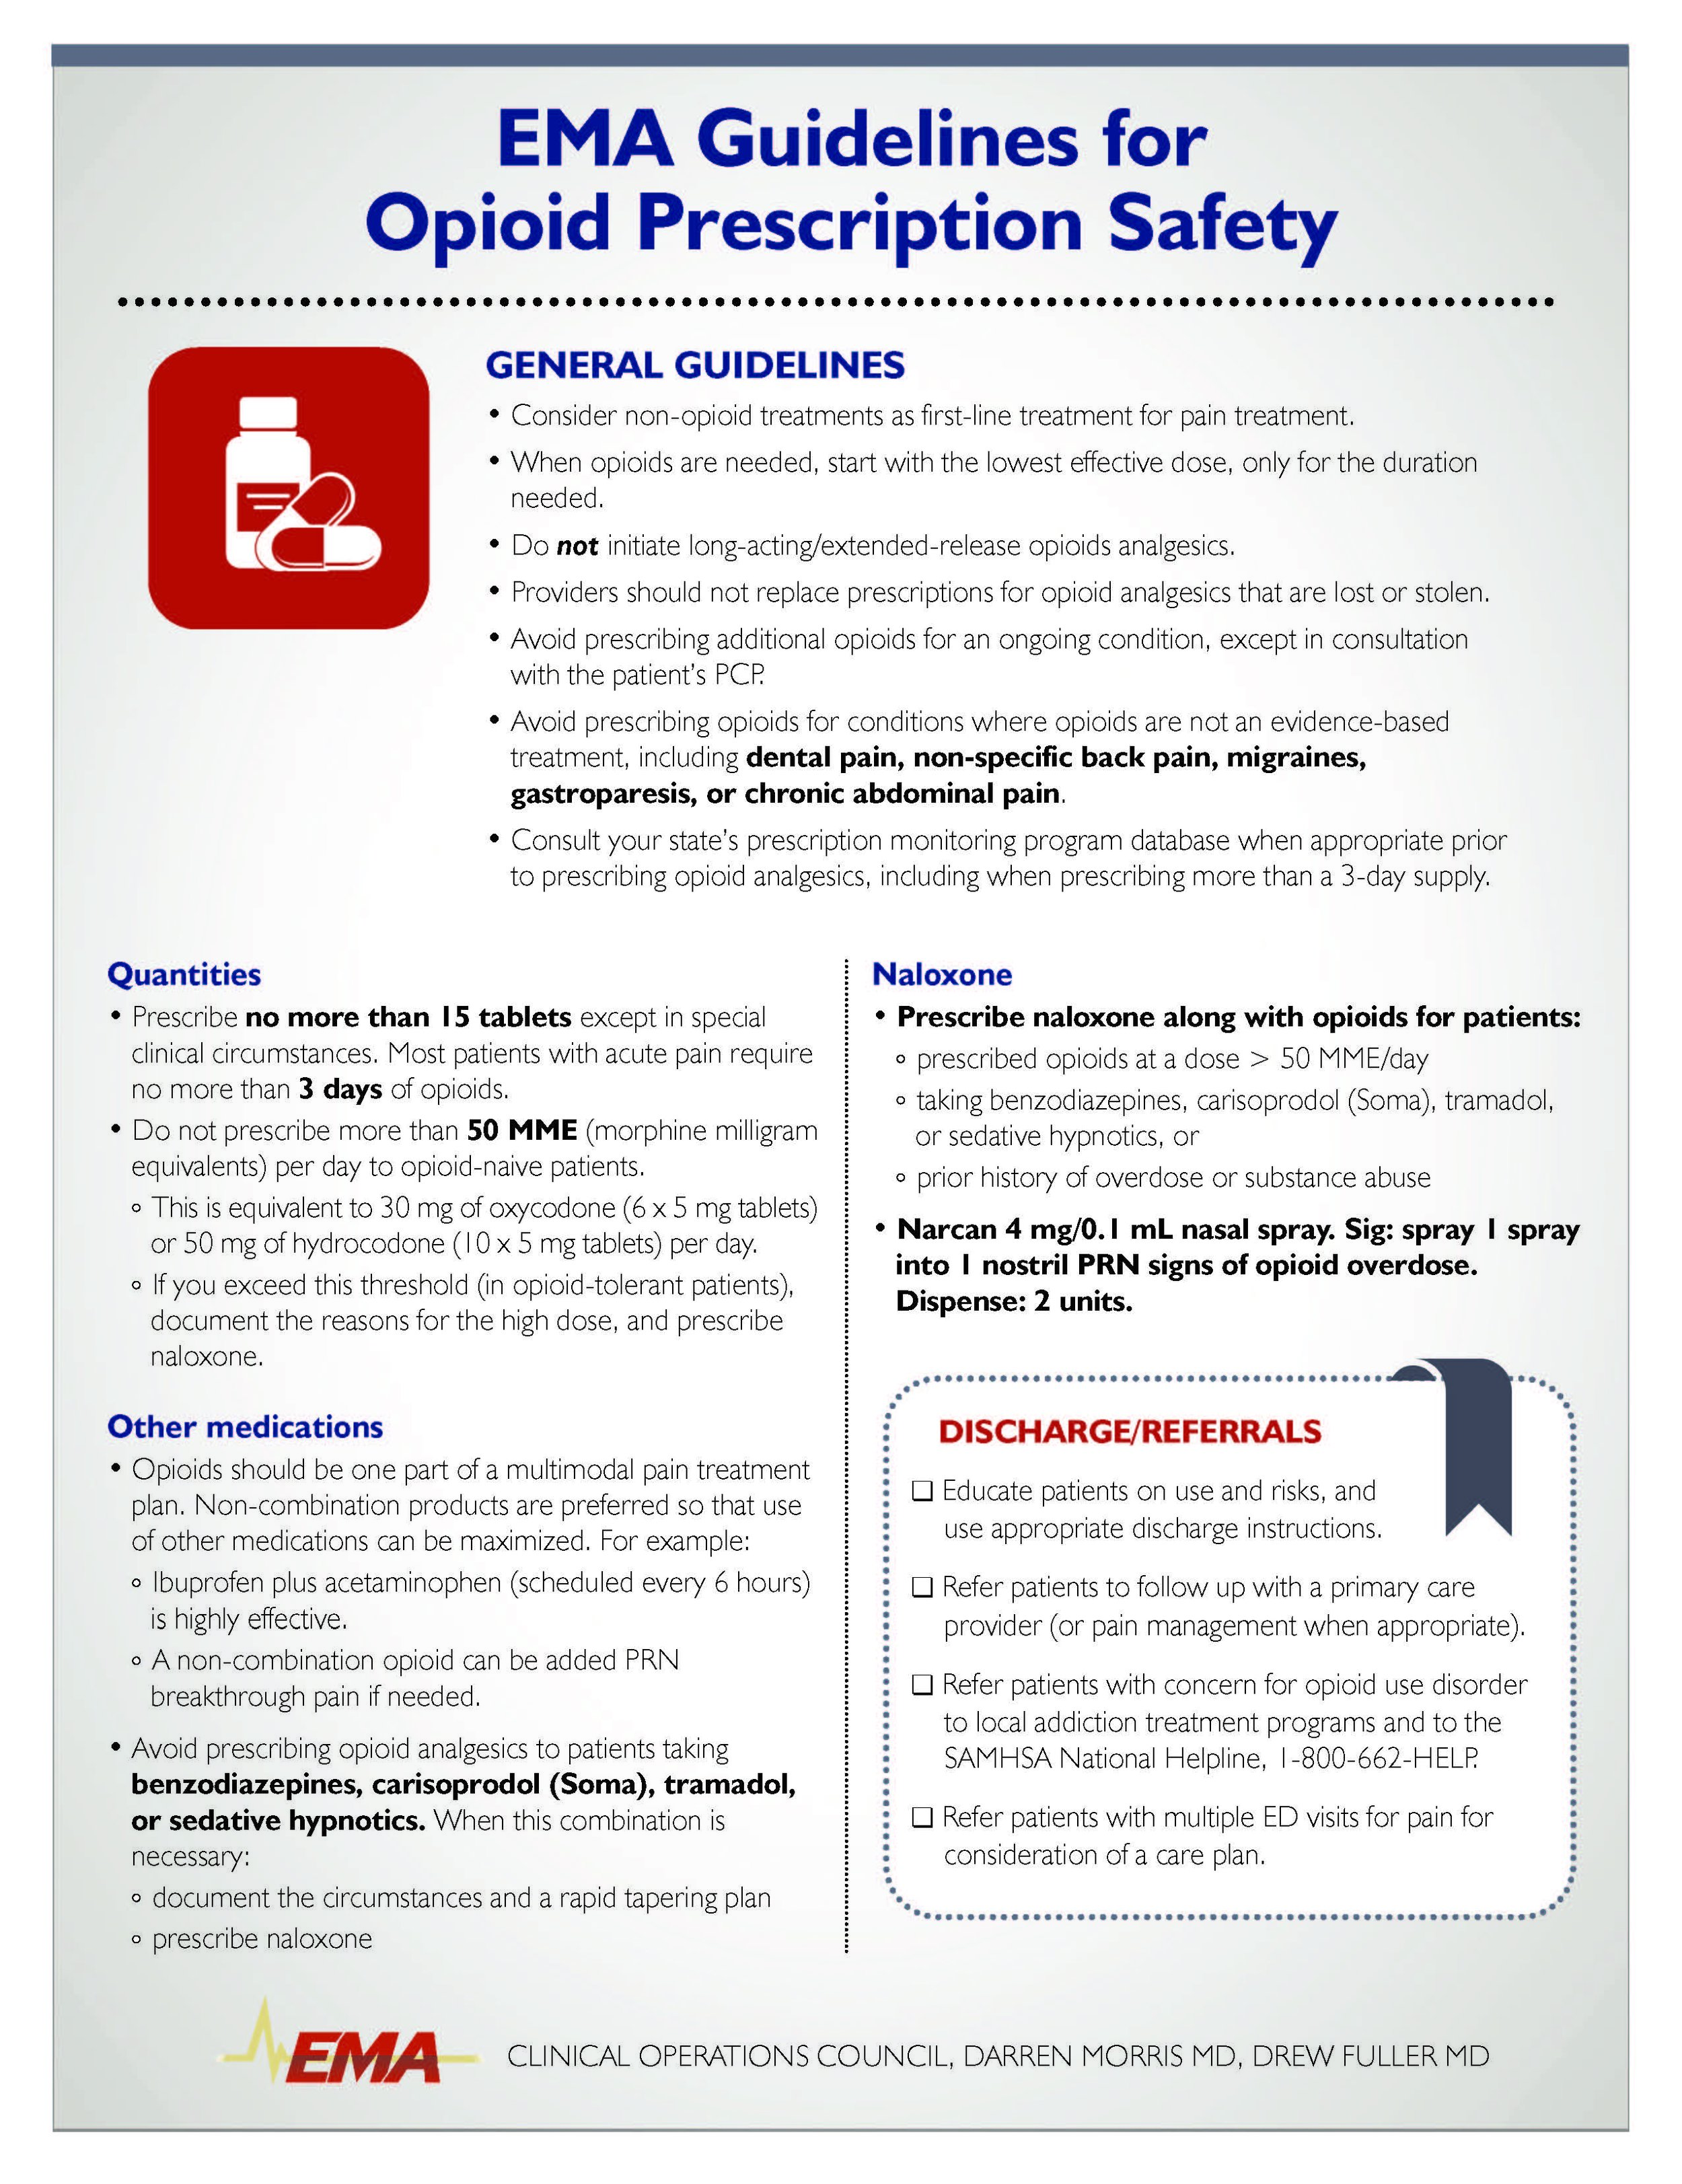 Guidelines for Opioid Prescription Safety Final May 2018.jpg